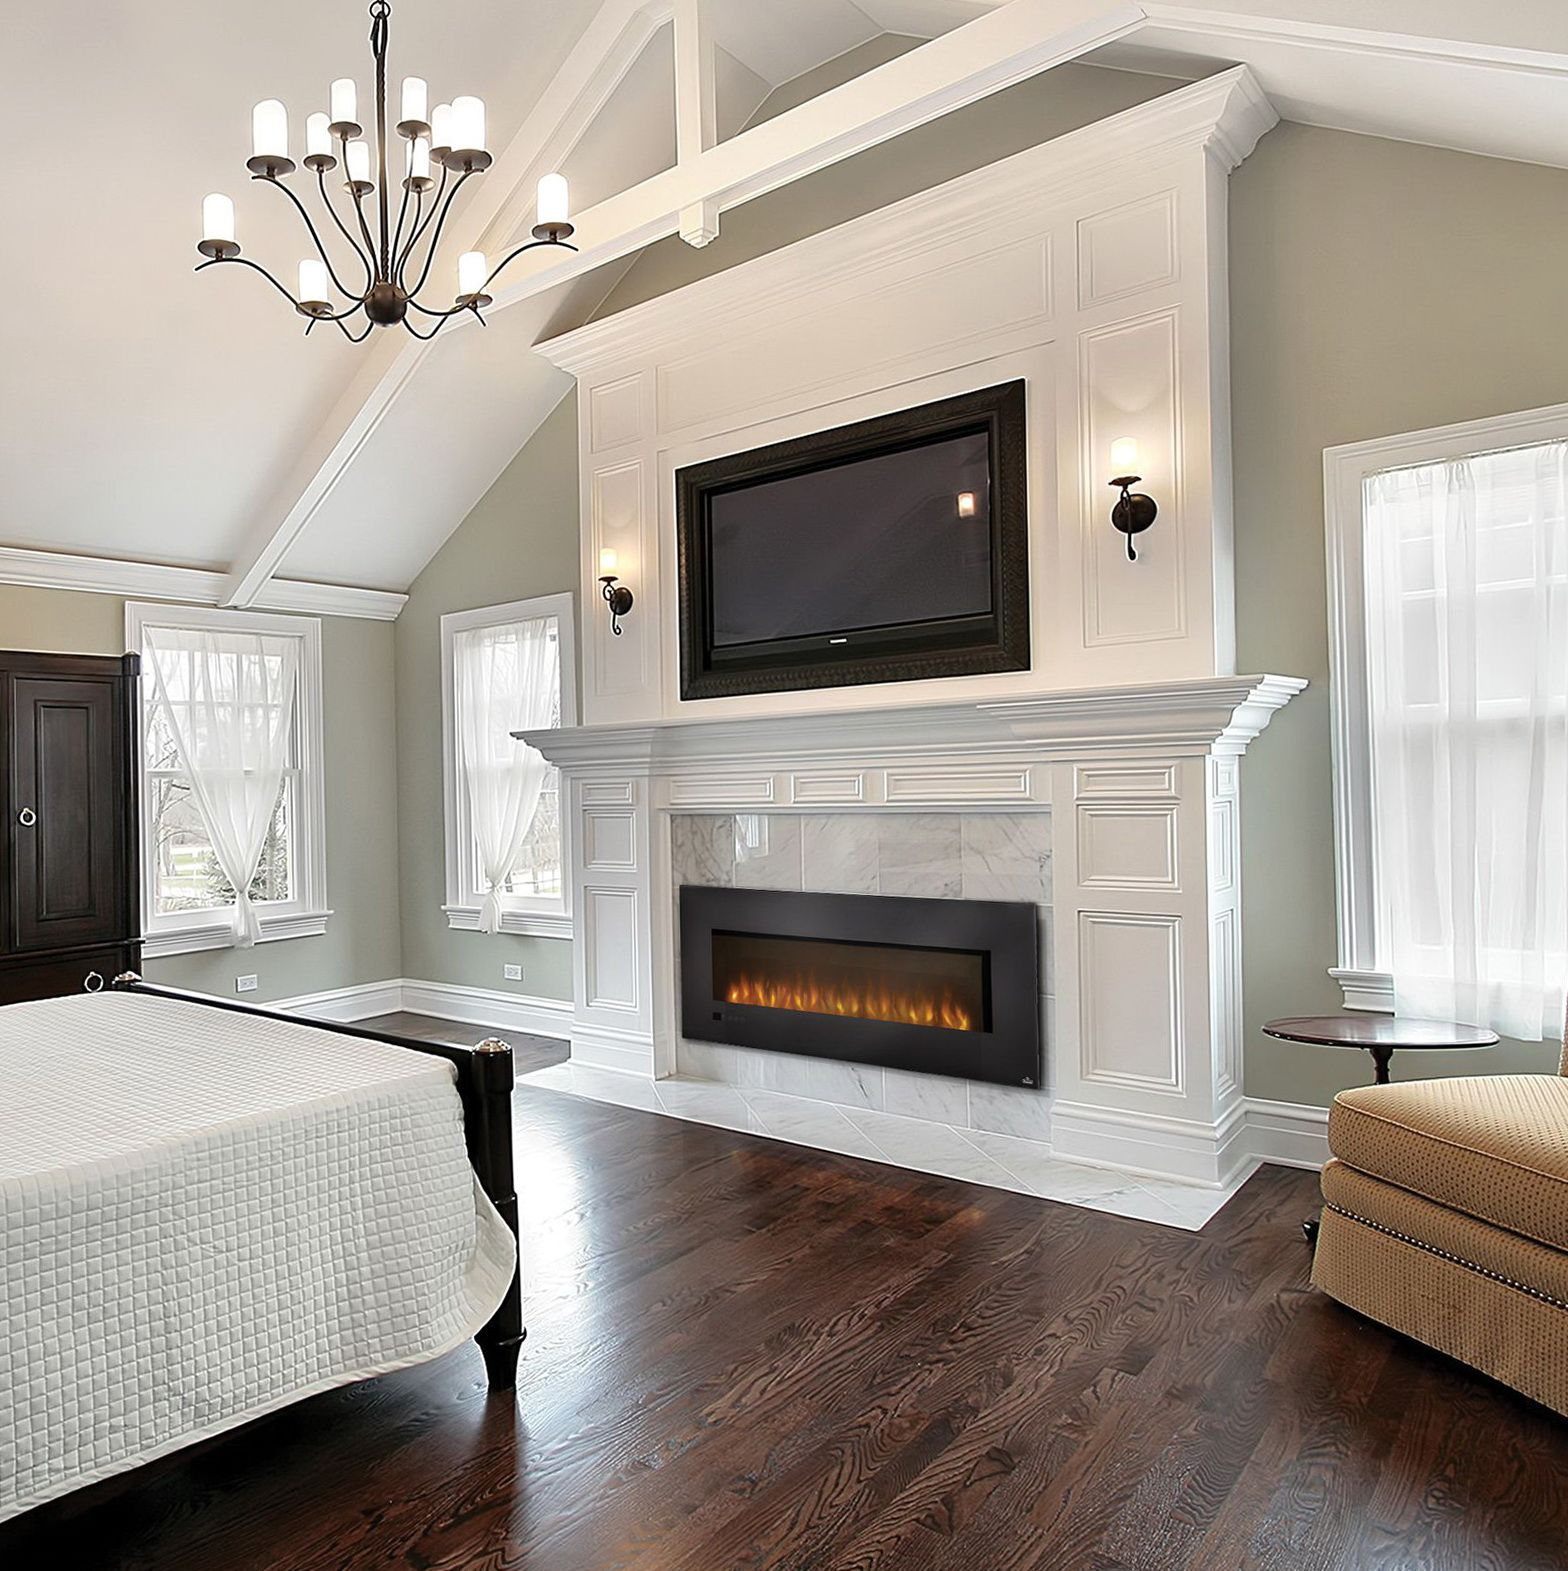 Superieur Related Image Fireplace Stores, Fireplace Wall, Tile Around Fireplace,  Glass Tile Fireplace,